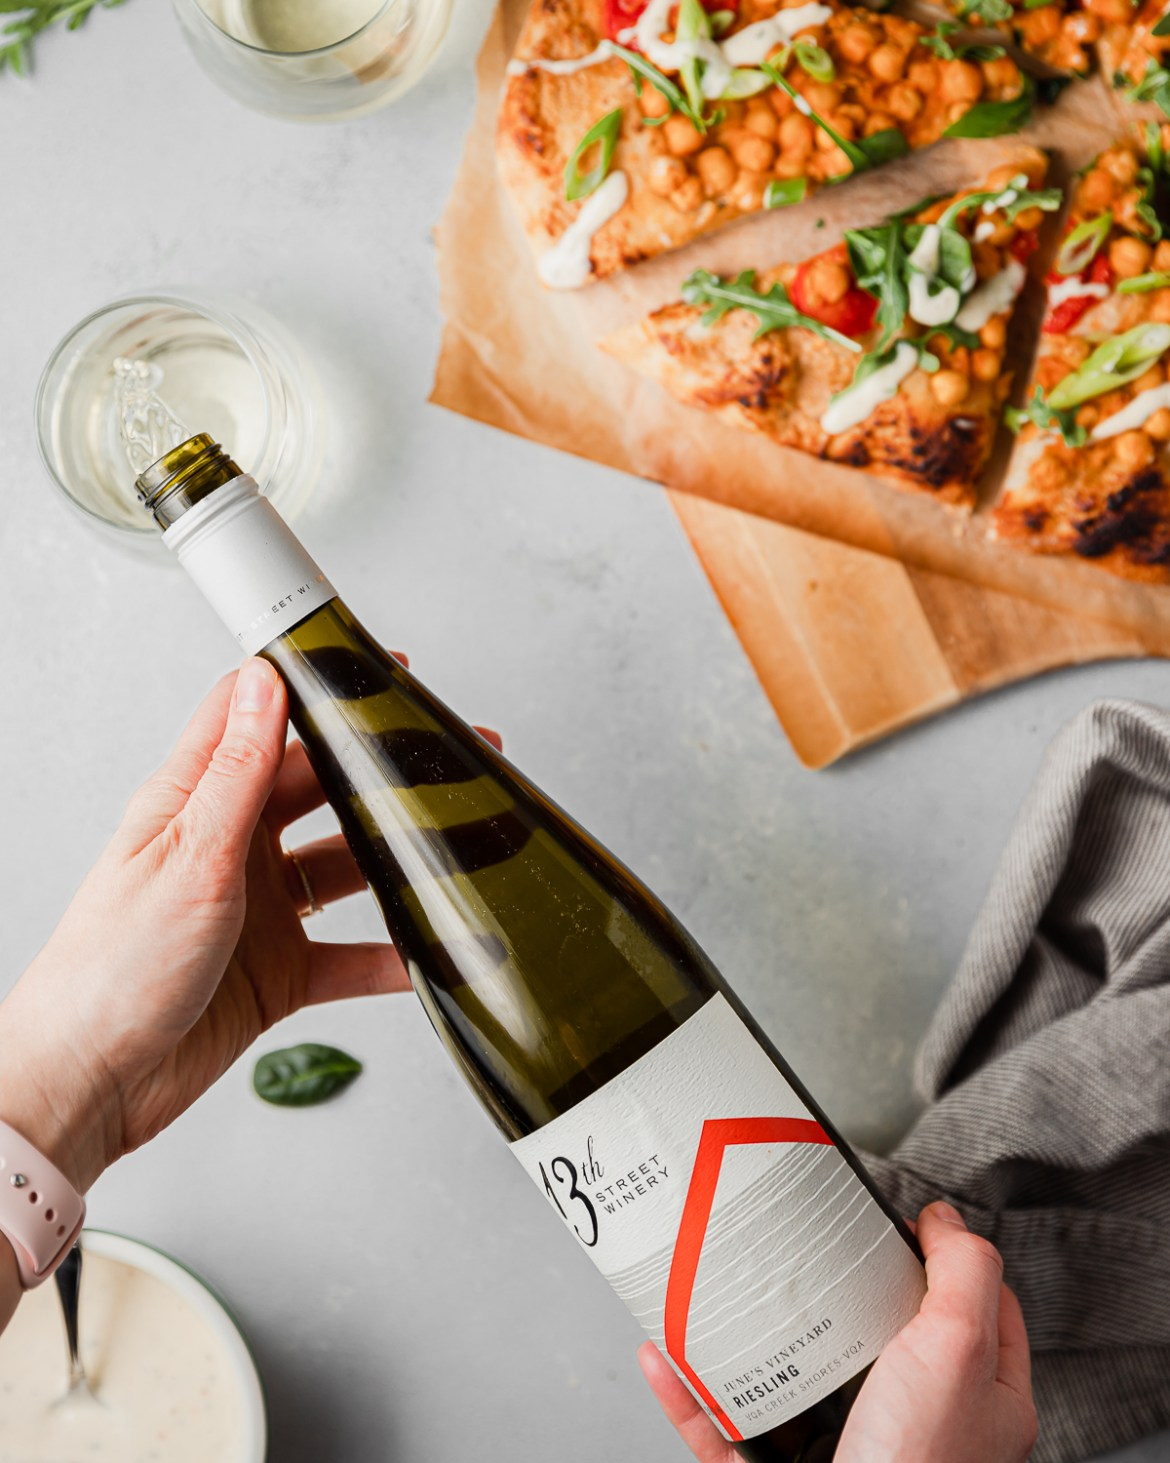 13th street winery bottle of Riesling